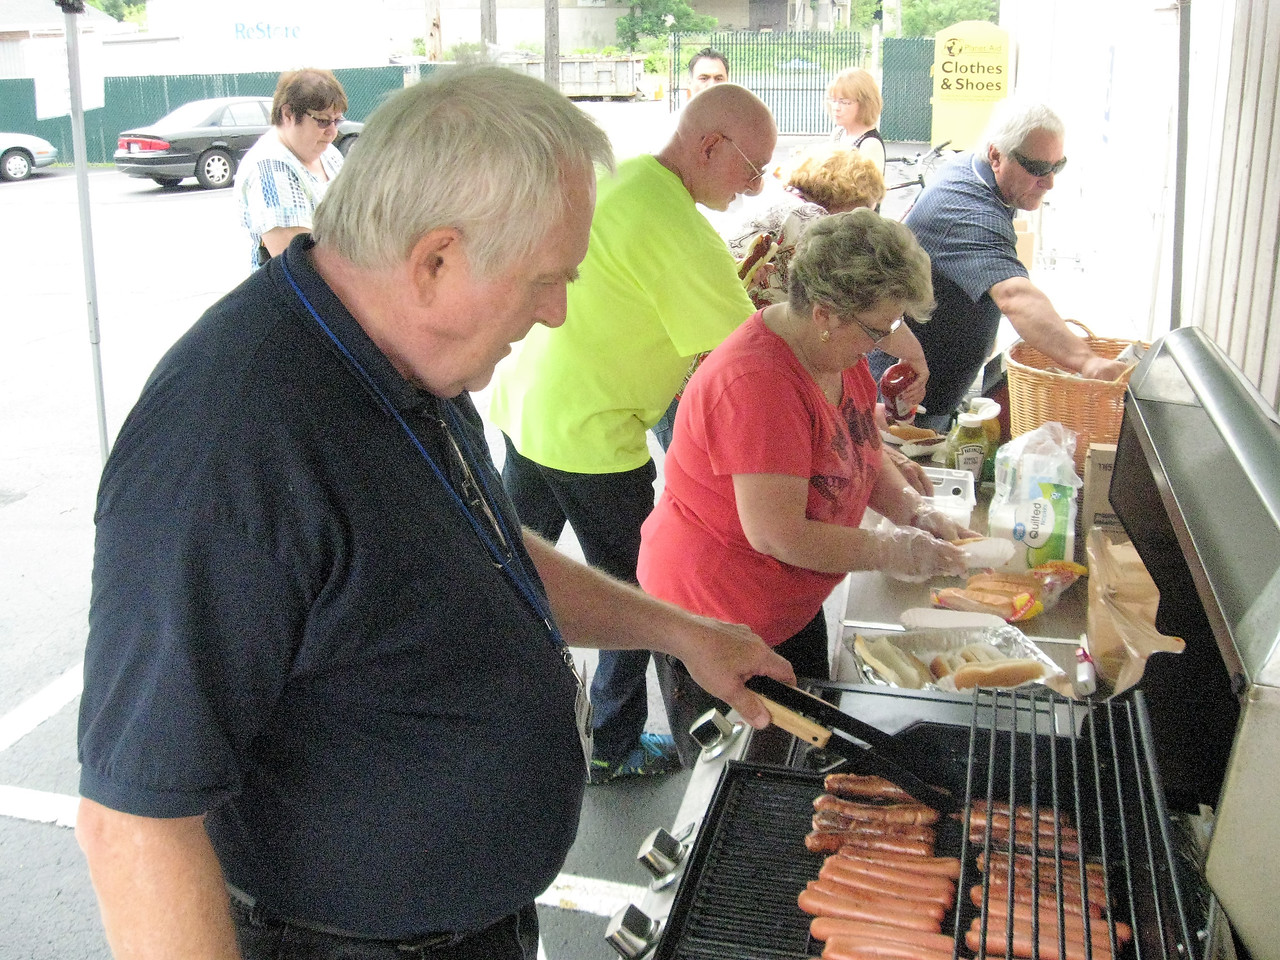 BOB SANDRICK / GAZETTE Jerry Barthelemy, assistant store manager, and volunteer Pat Neal grill and serve hot dogs for ReStore customers Saturday. It was the store's sixth anniversary on Smith Road in Medina.